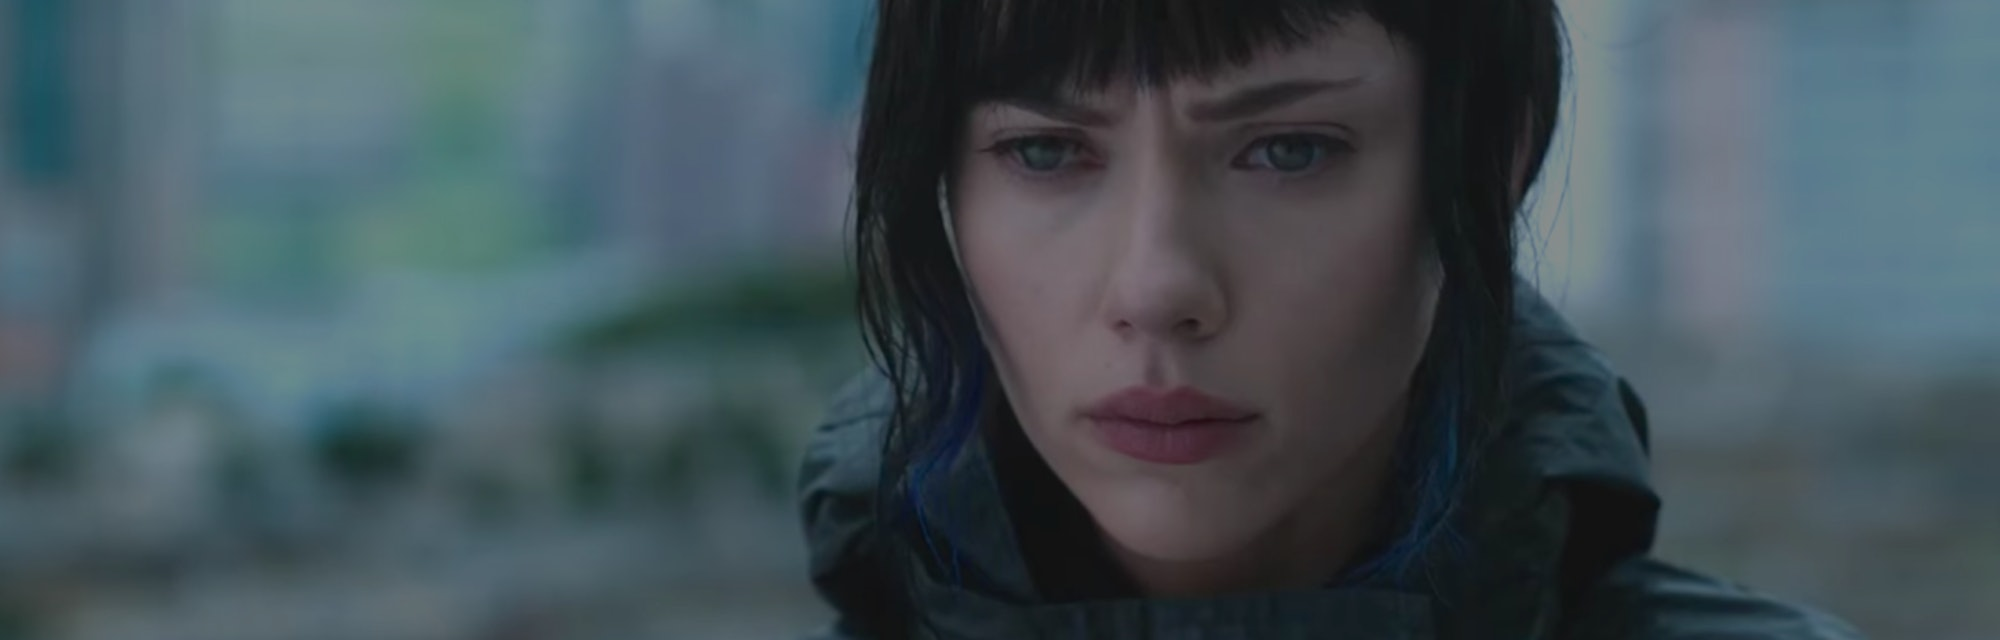 New Ghost In The Shell Posters Show Off All The Characters